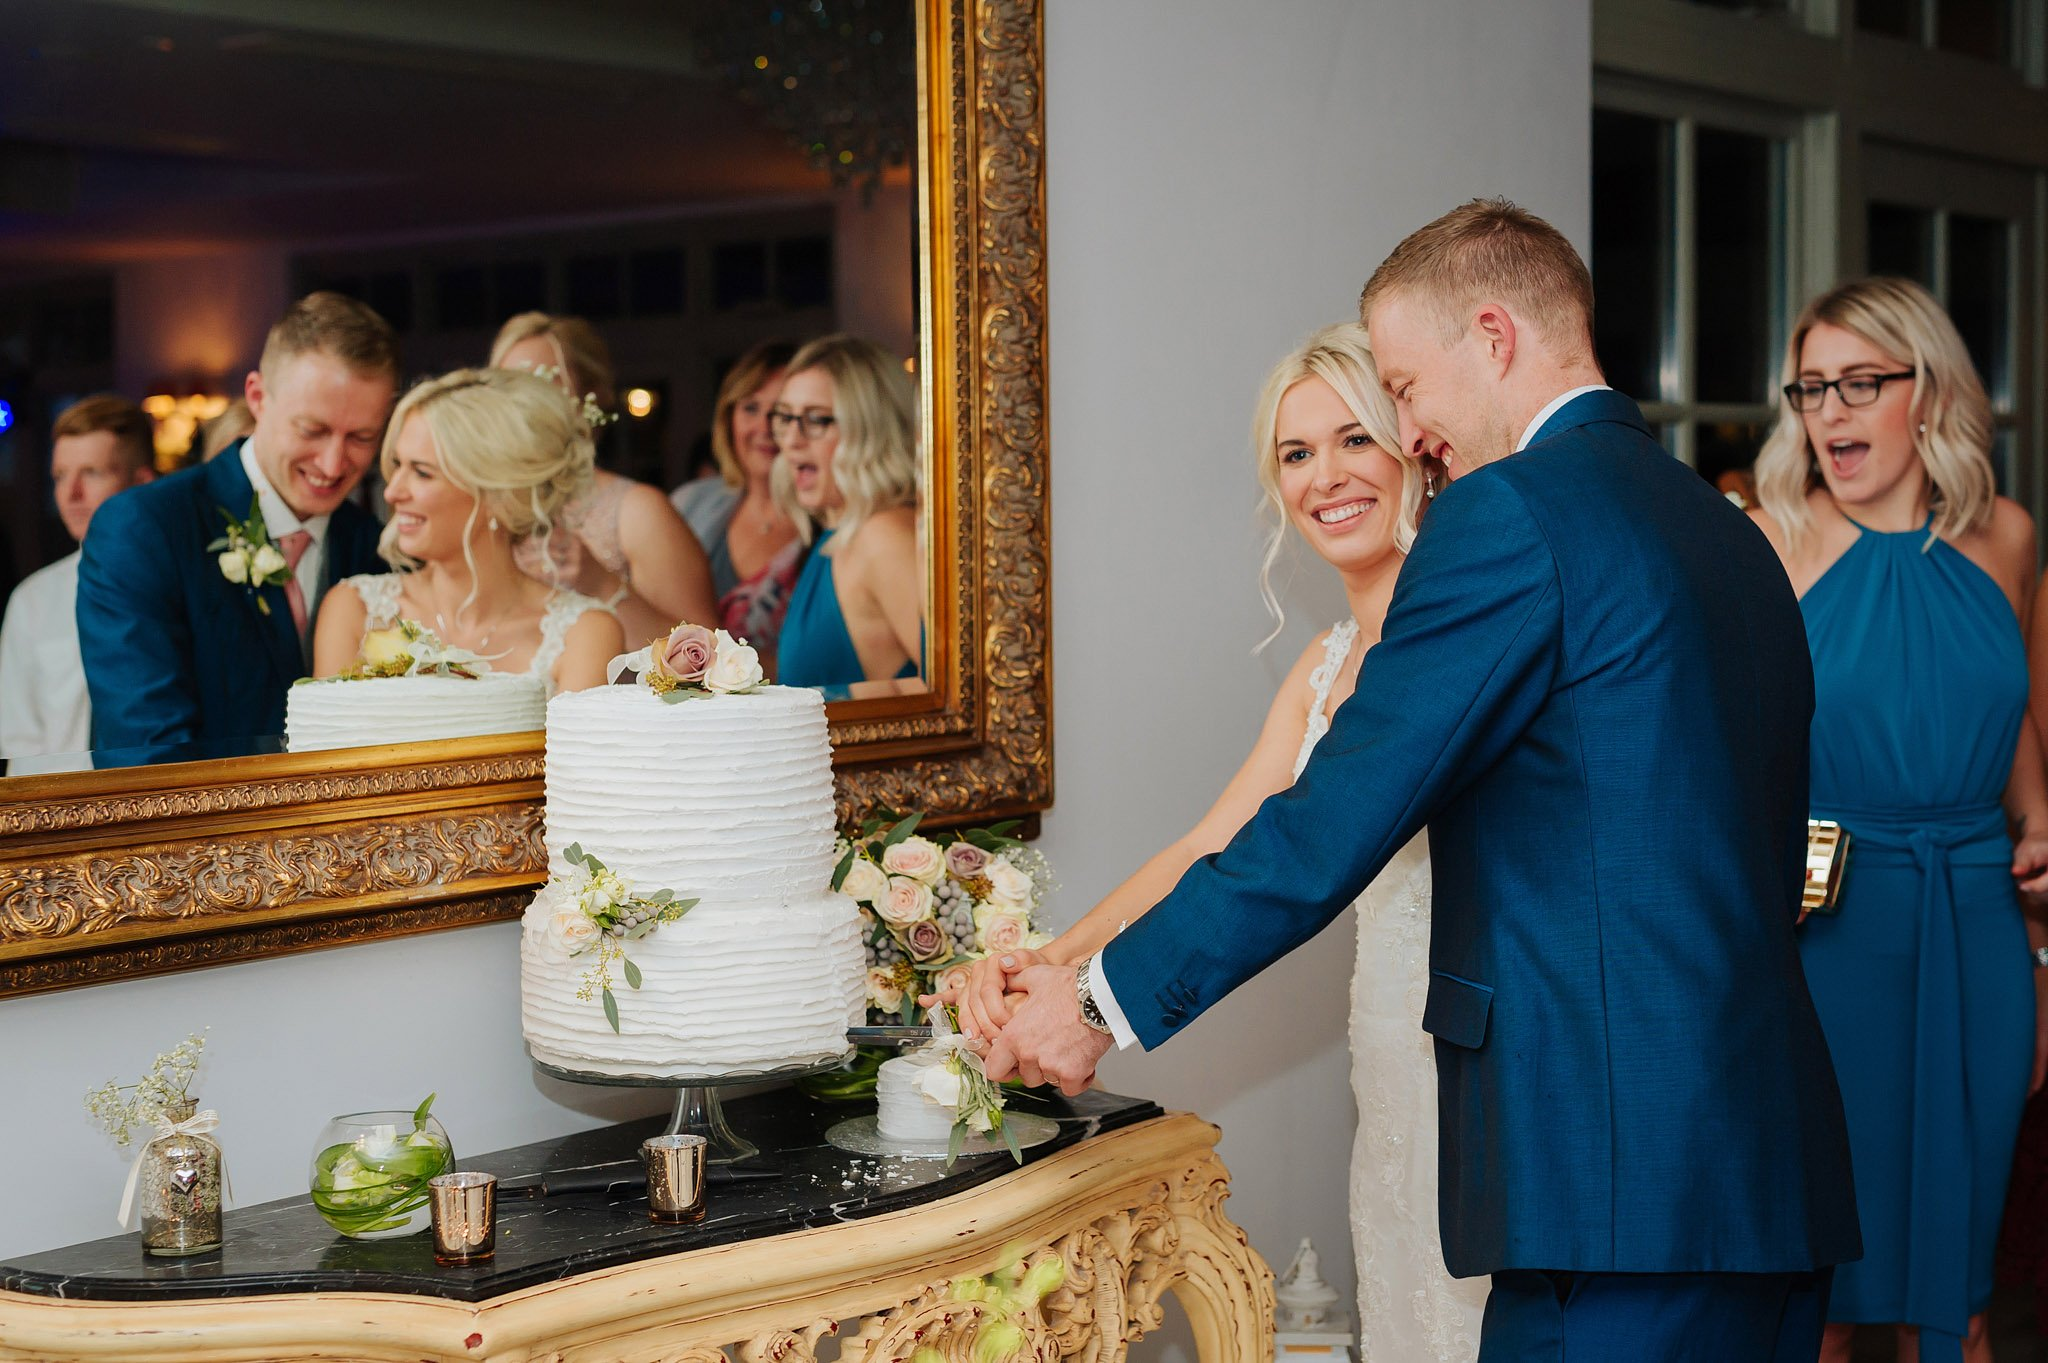 Lemore Manor wedding, Herefordshire - West Midlands | Sadie + Ken 110